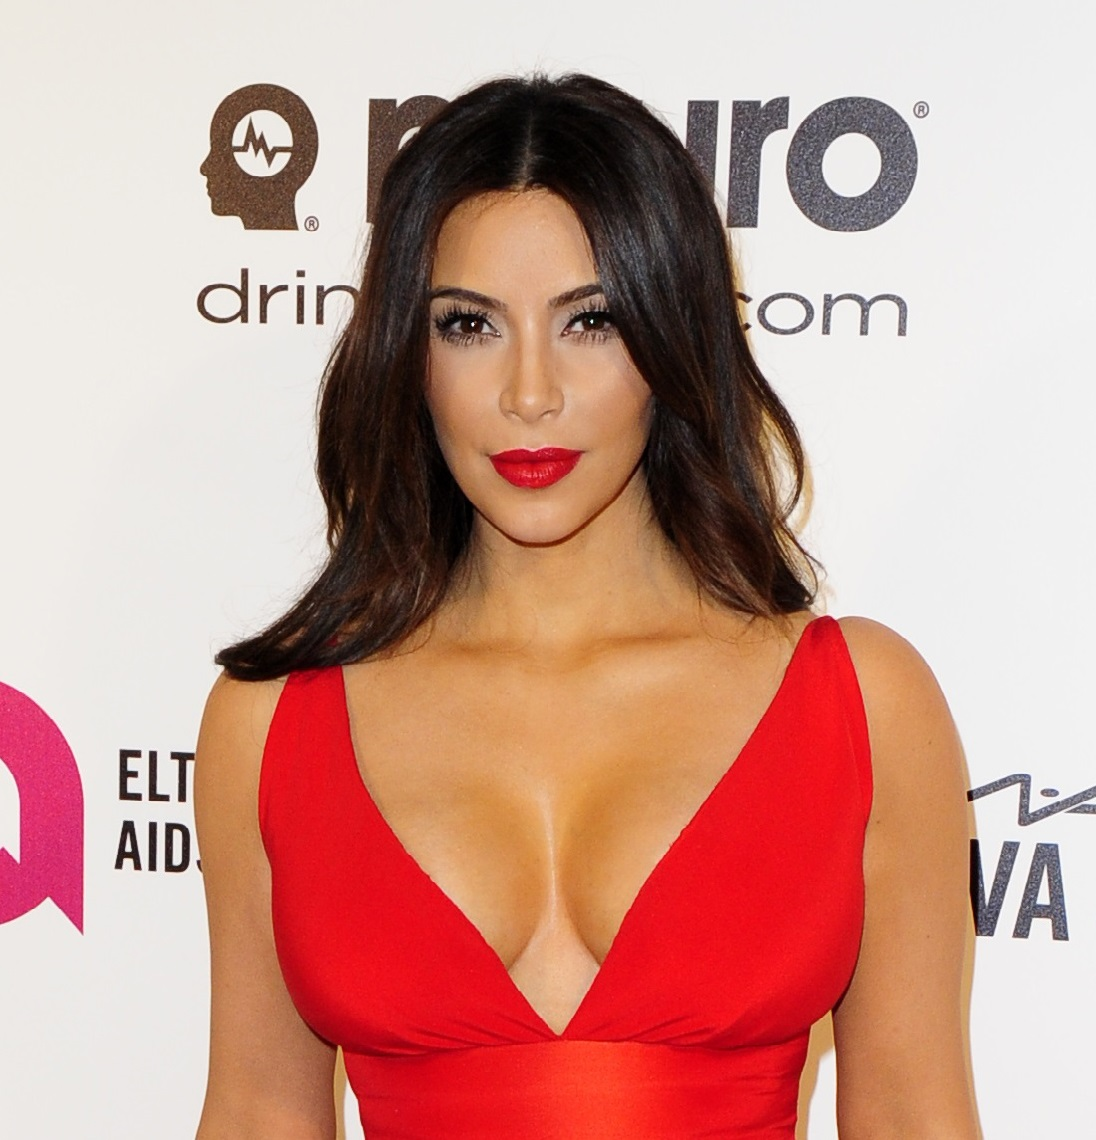 Kim Kardashian at the 2014 Elton John AIDS Foundation Oscar Party in Hollywood